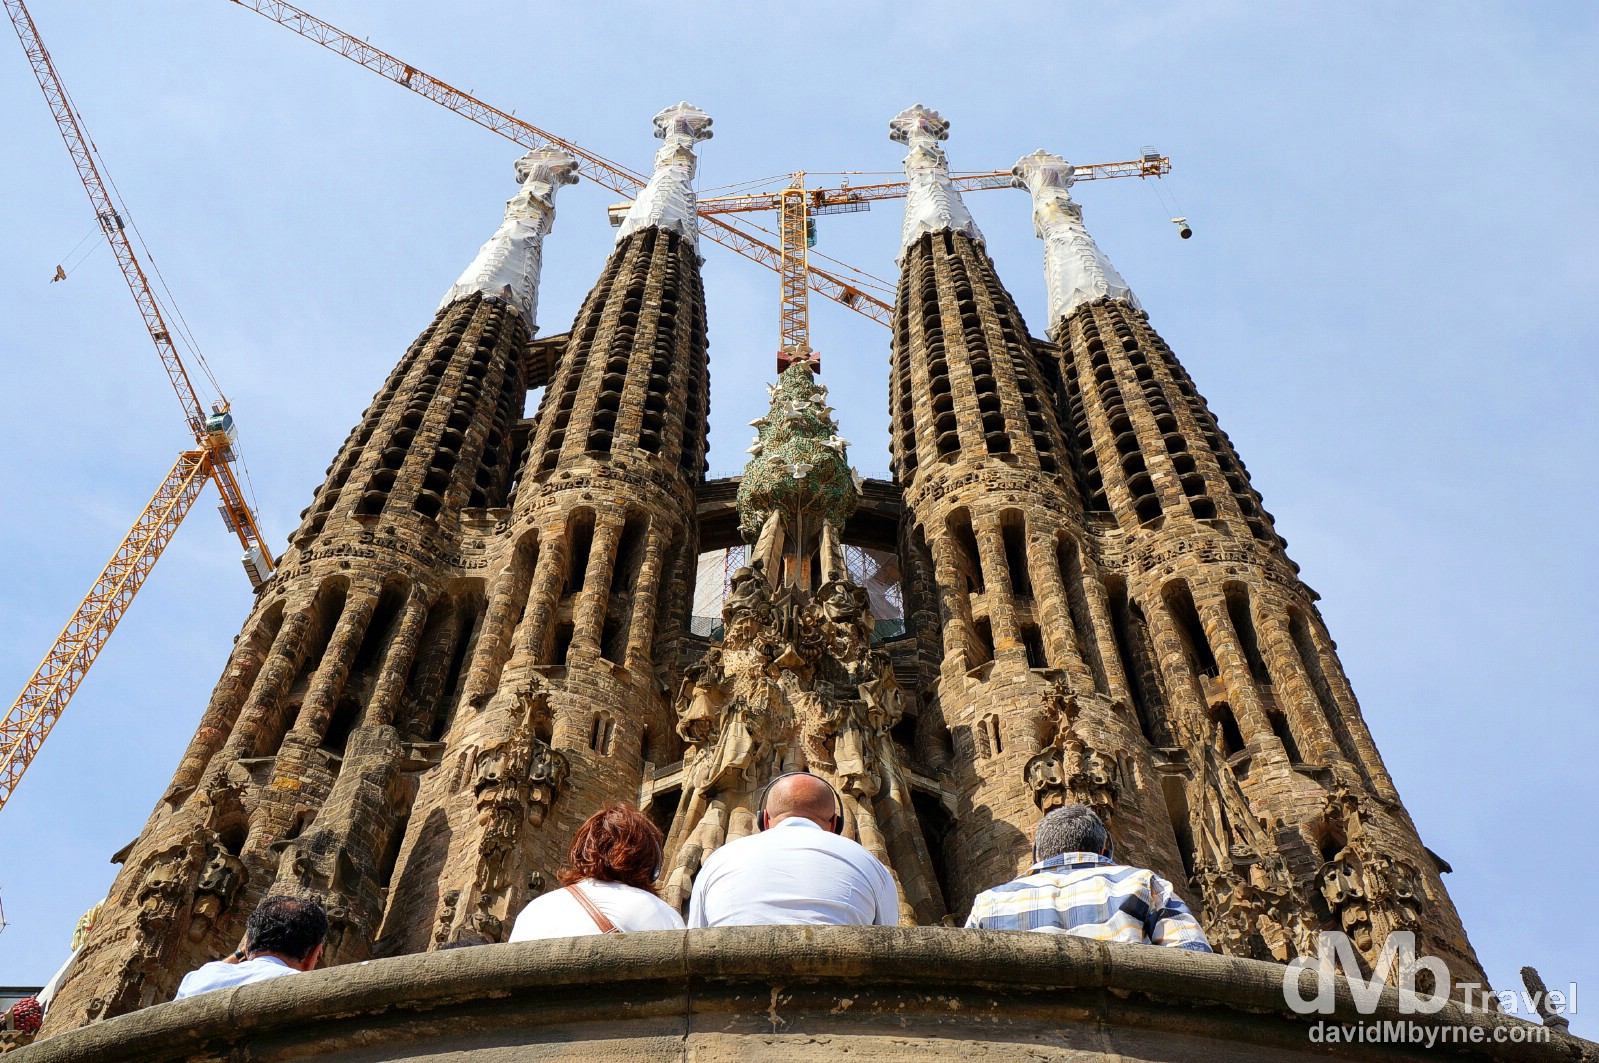 Admiring the Nativity facade & towers of the eastern side of the Sagrada Familia in Barcelona Spain. June 18th, 2014.